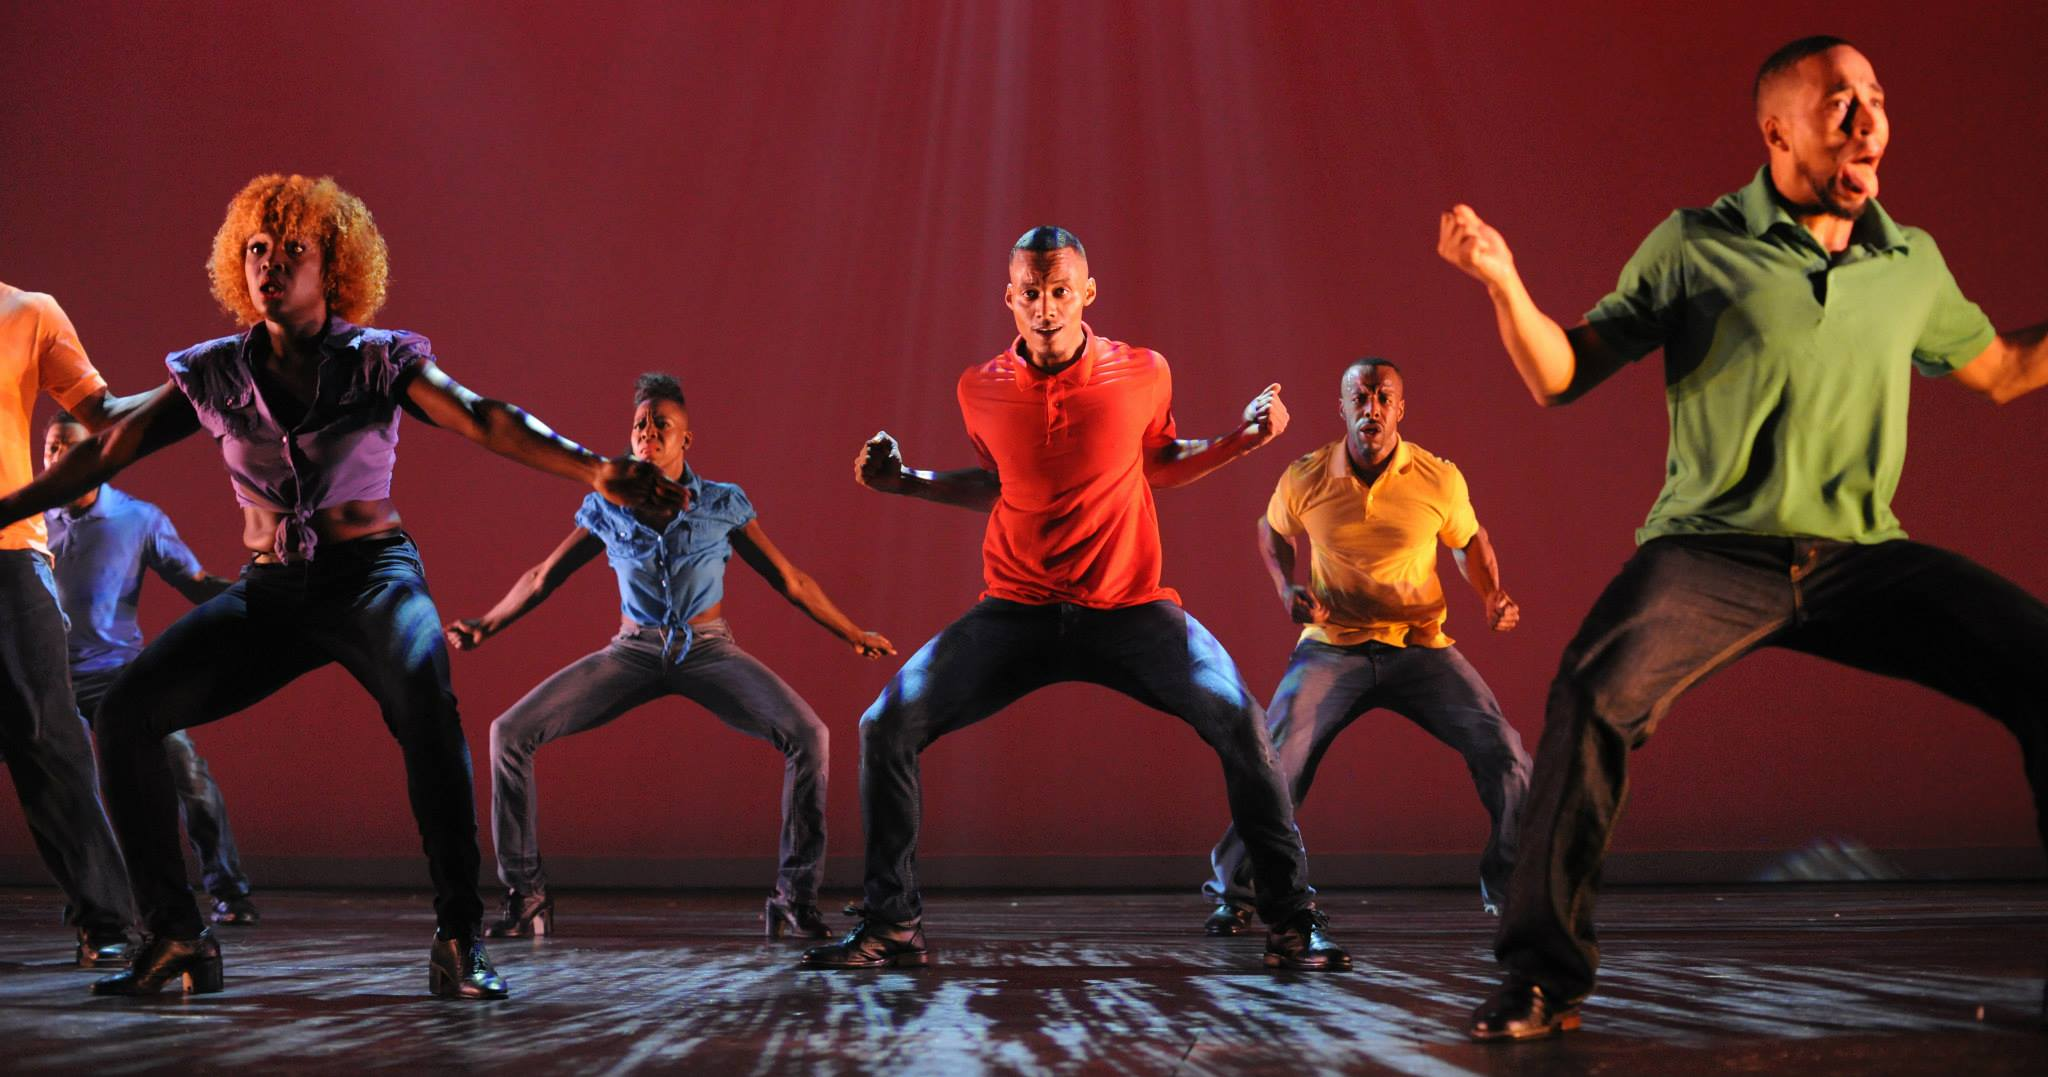 Step Afrika performs at Wakefield on March 26th